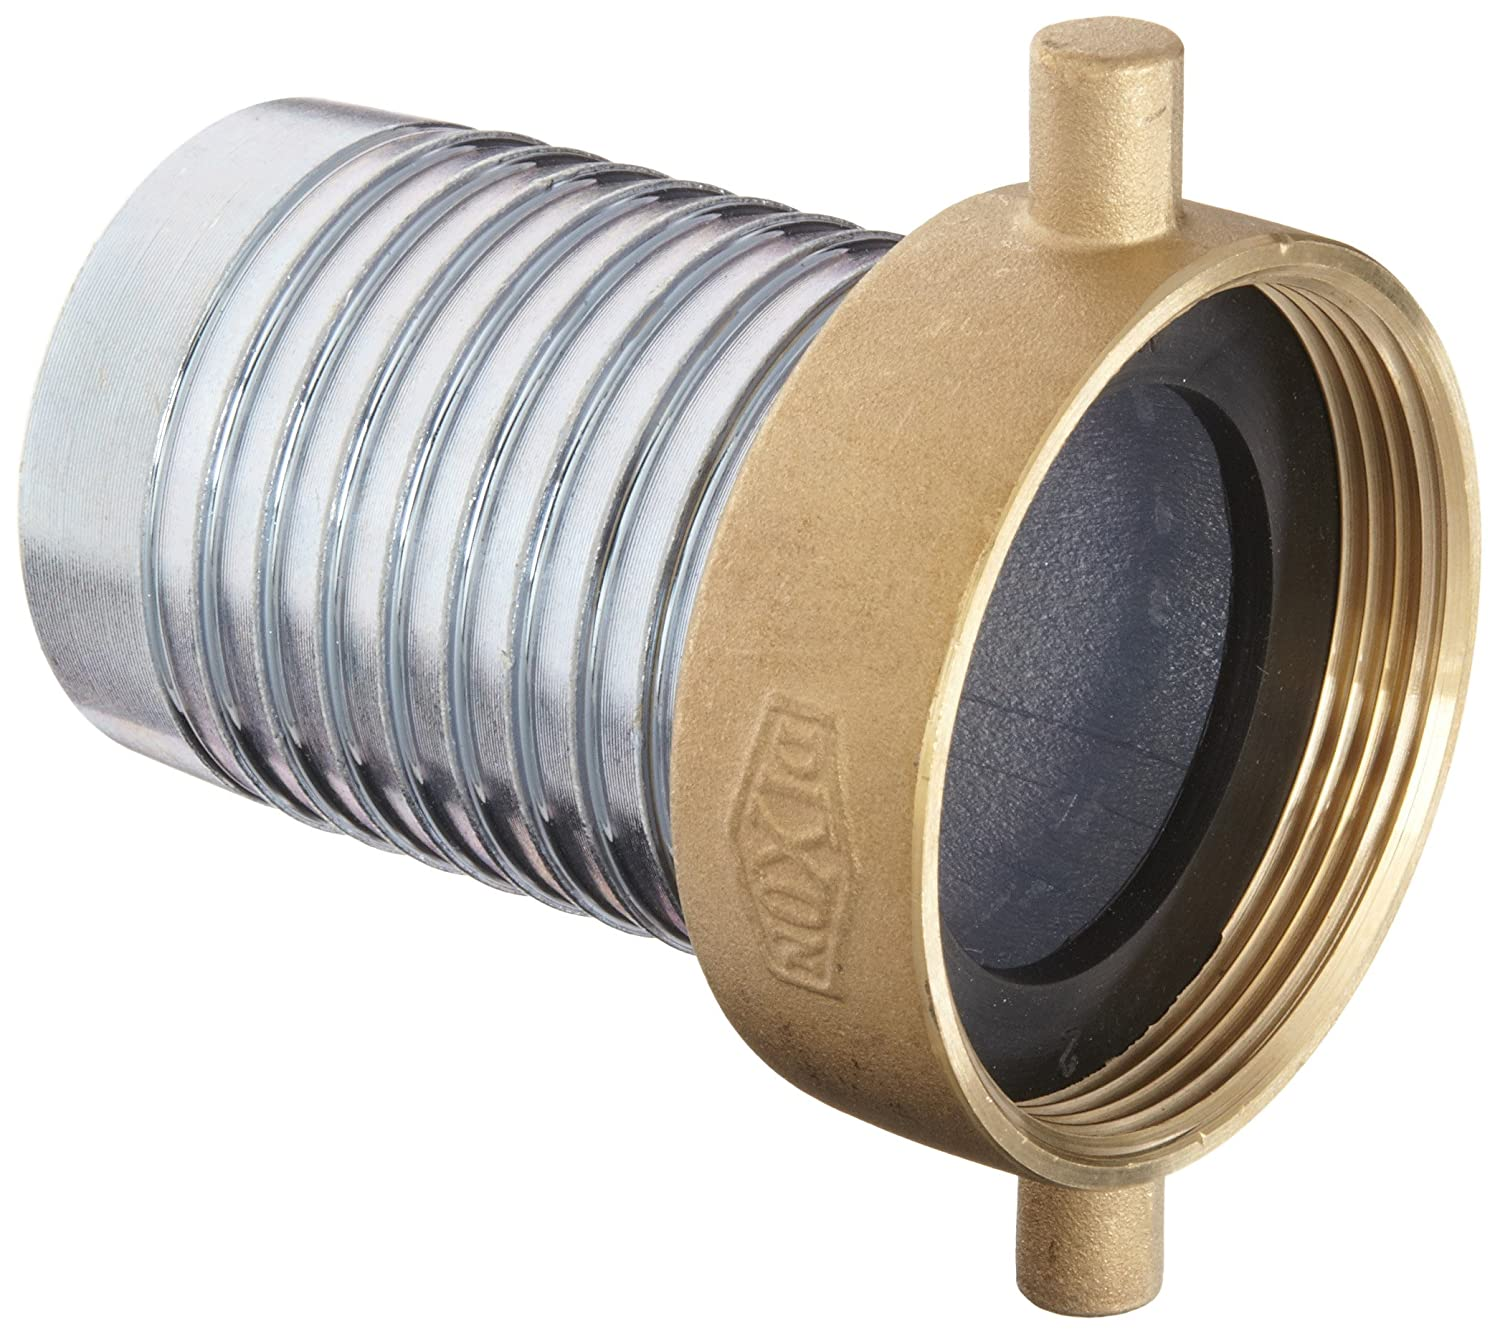 2 NPSM Female x 2 Hose ID Barbed 2 NPSM Female x 2 Hose ID Barbed Dixon Valve /& Coupling Dixon FCSB200 Steel Hose Fitting King Short Shank Suction Coupling with Brass Nut